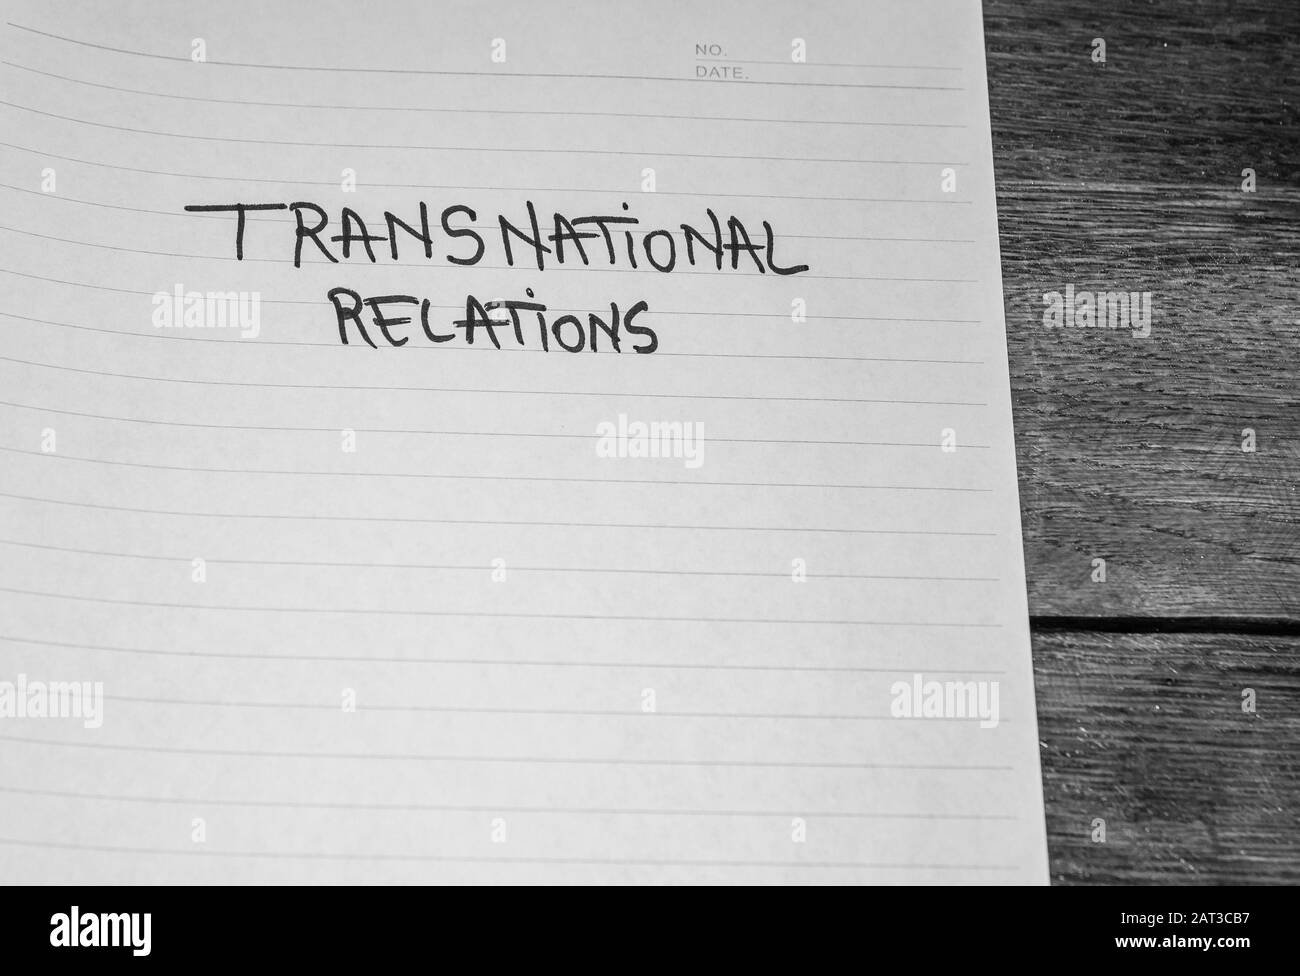 Transnational relations, handwriting  text on paper, political message. Political text on office agenda. Concept of democracy, voting, politics. Copy Stock Photo